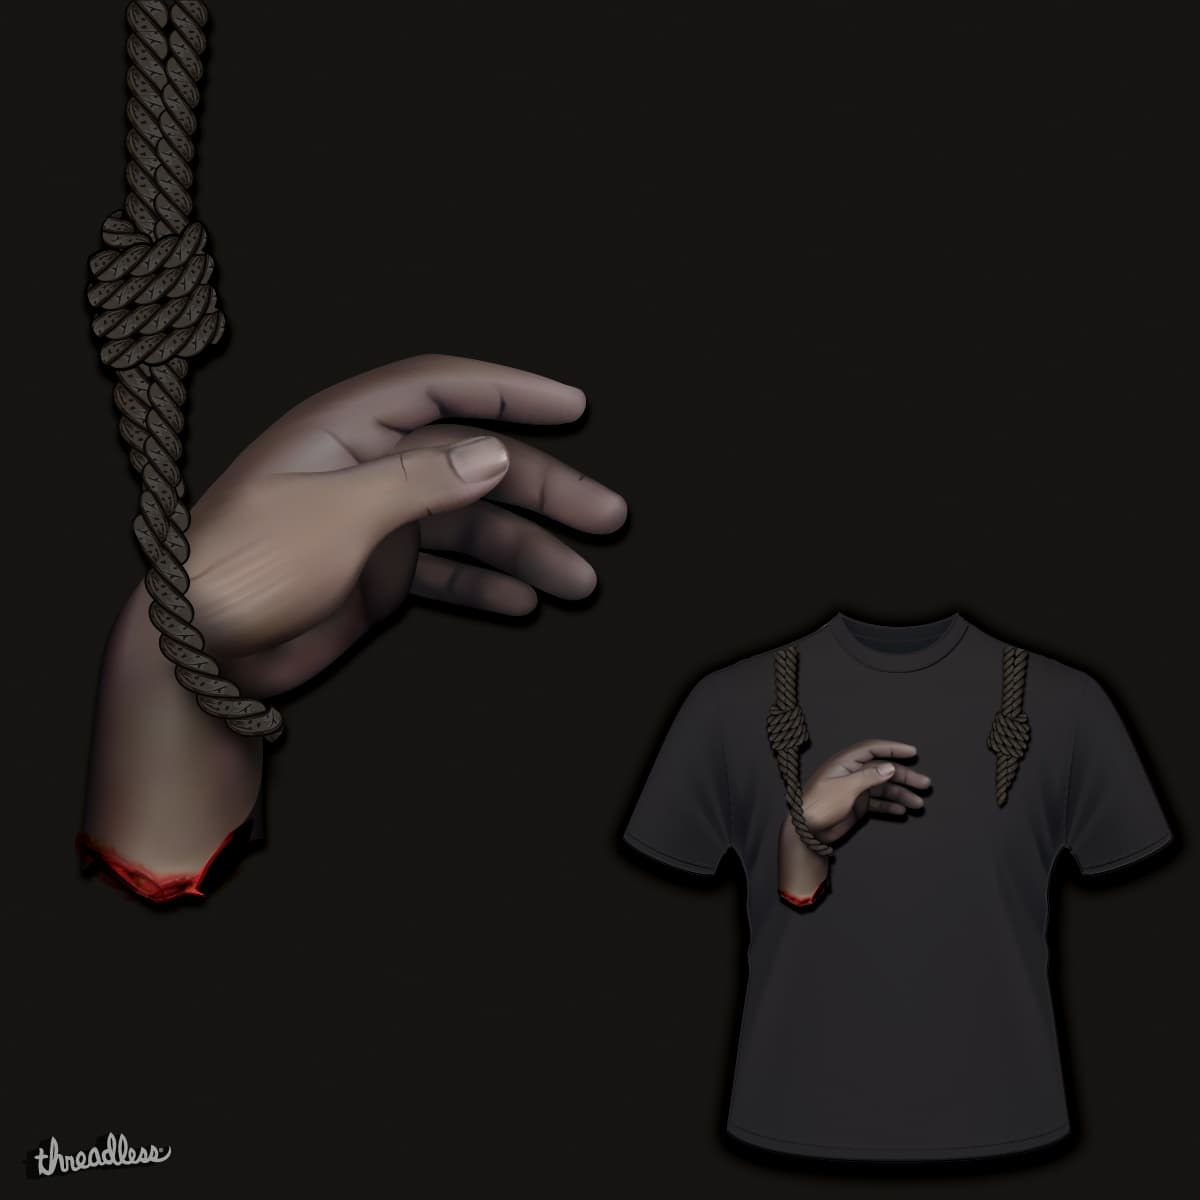 A Shoulder to Hang On by monsterevox on Threadless